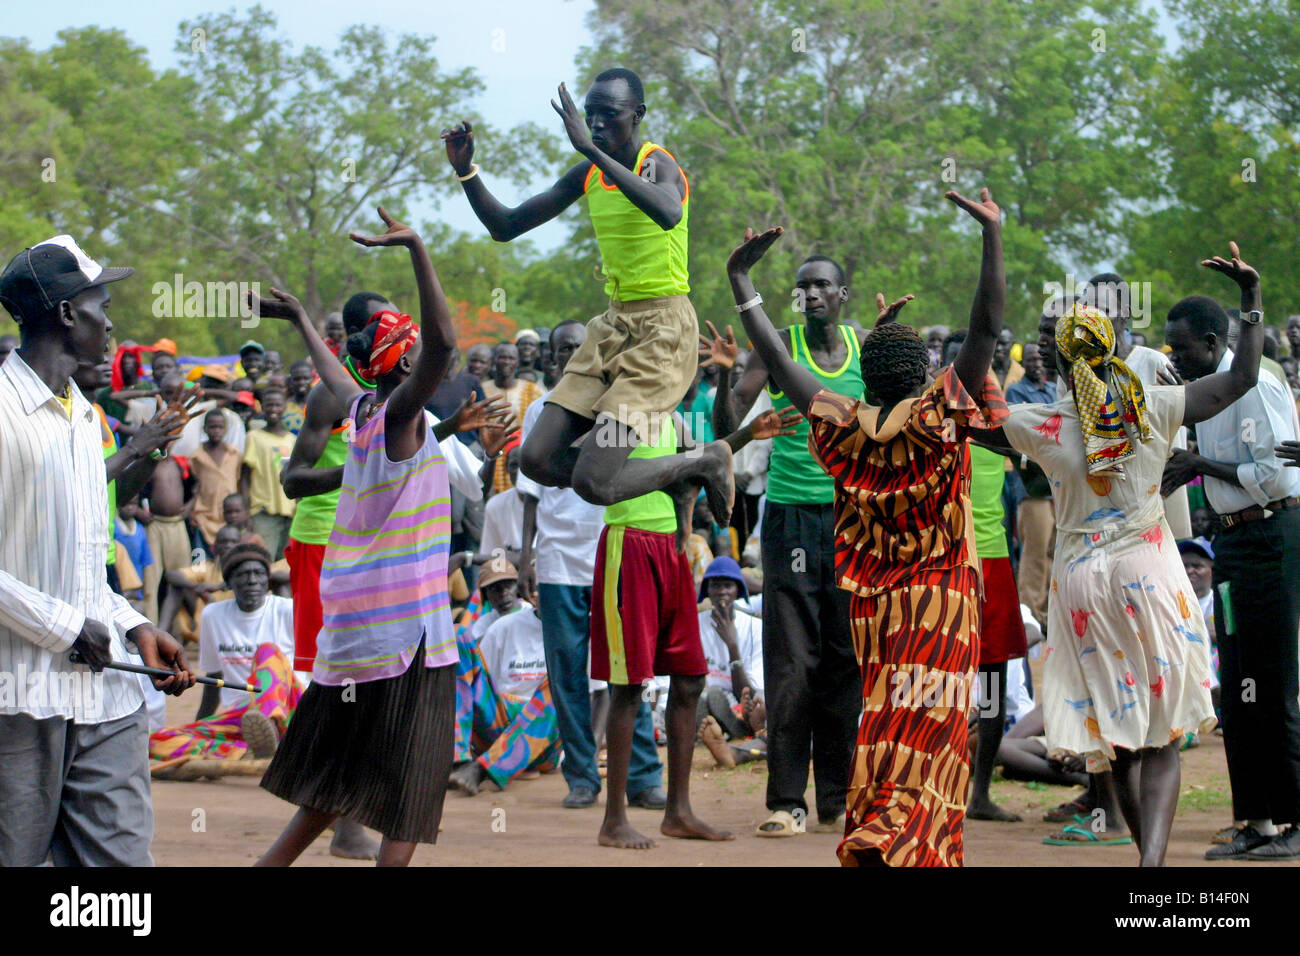 In this photo of traditional Dinka dancing in Rumbek, South Sudan, the women dance, as the men take turns jumping - Stock Image